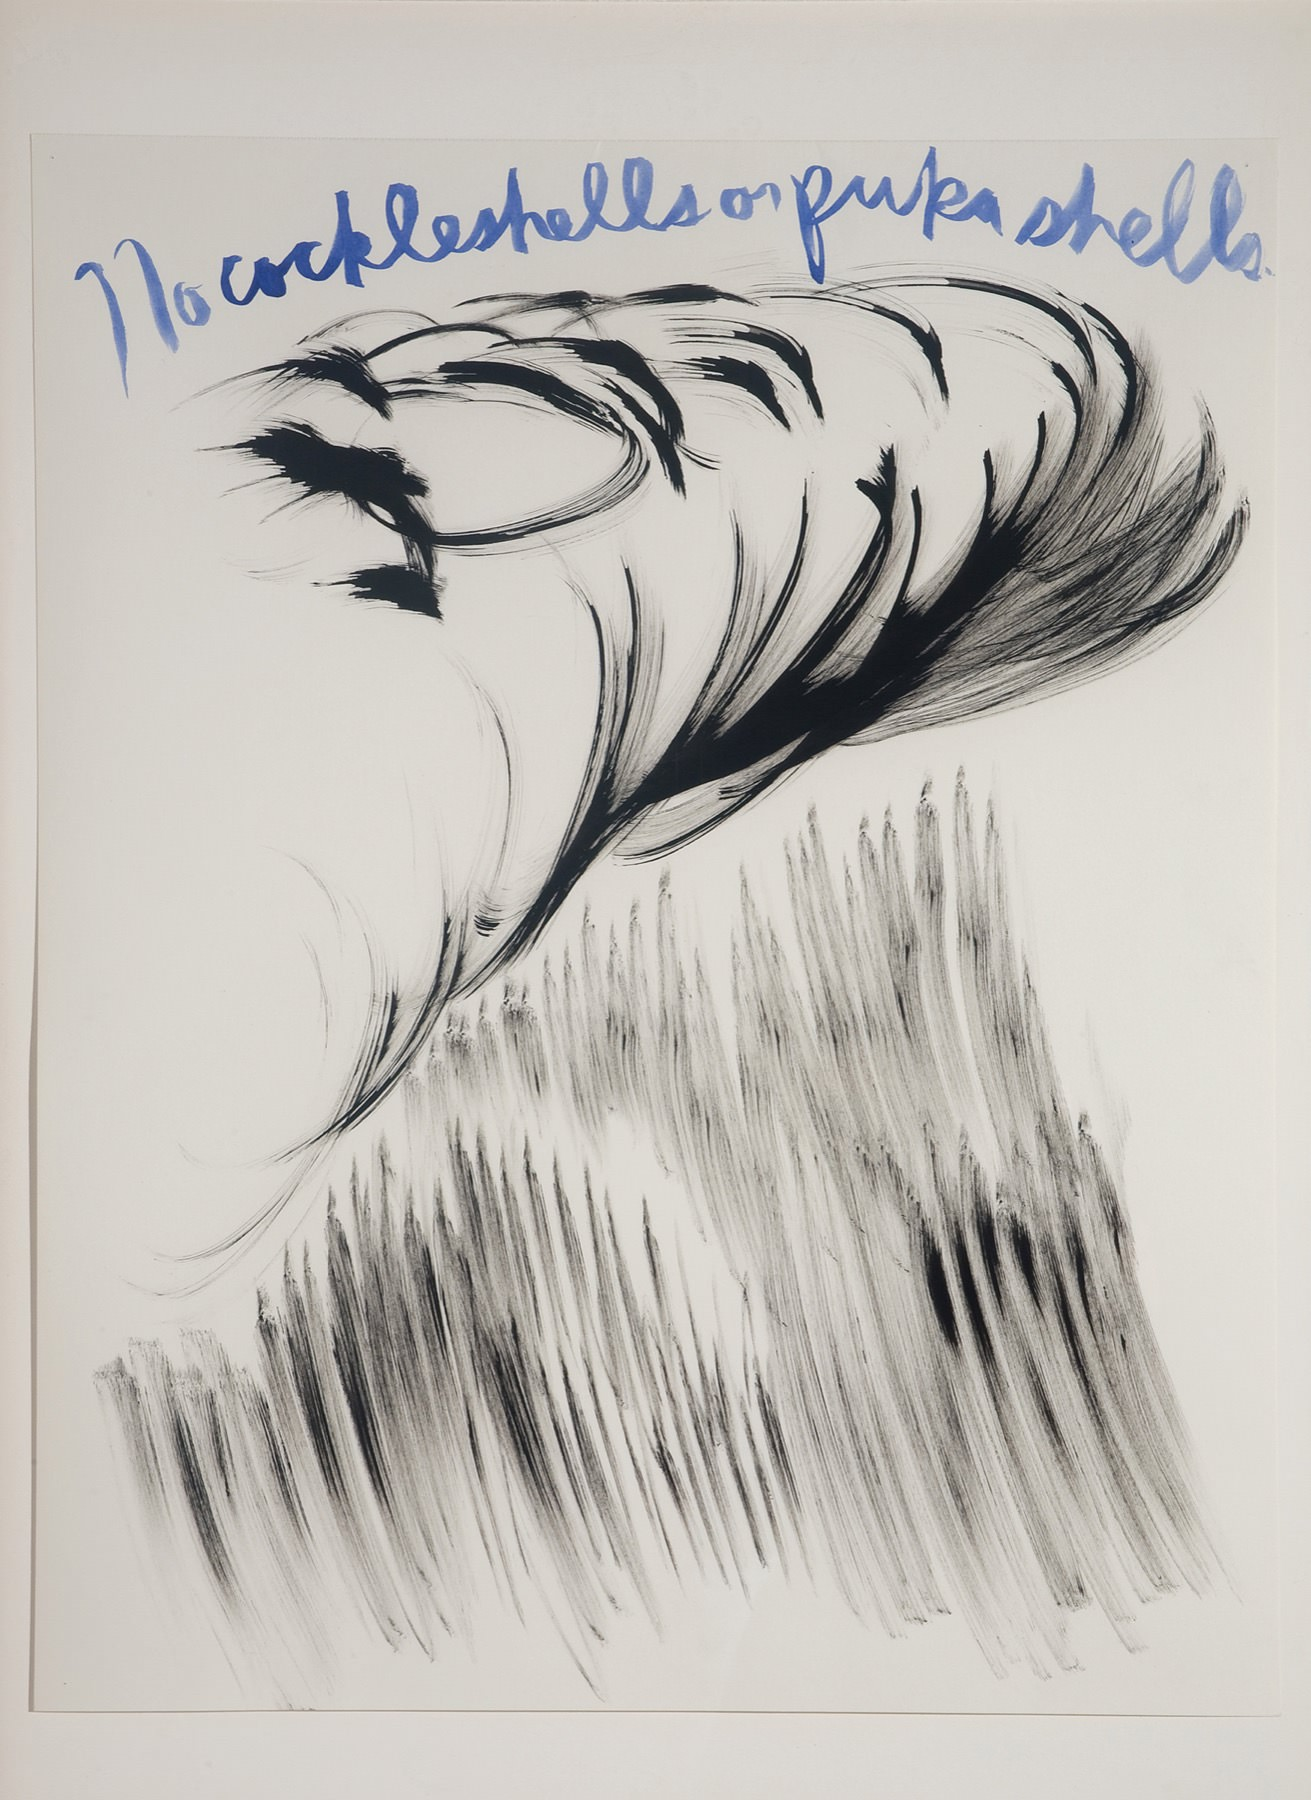 Raymond Pettibon, Untitled (No cockleshells or pukashells), 2003